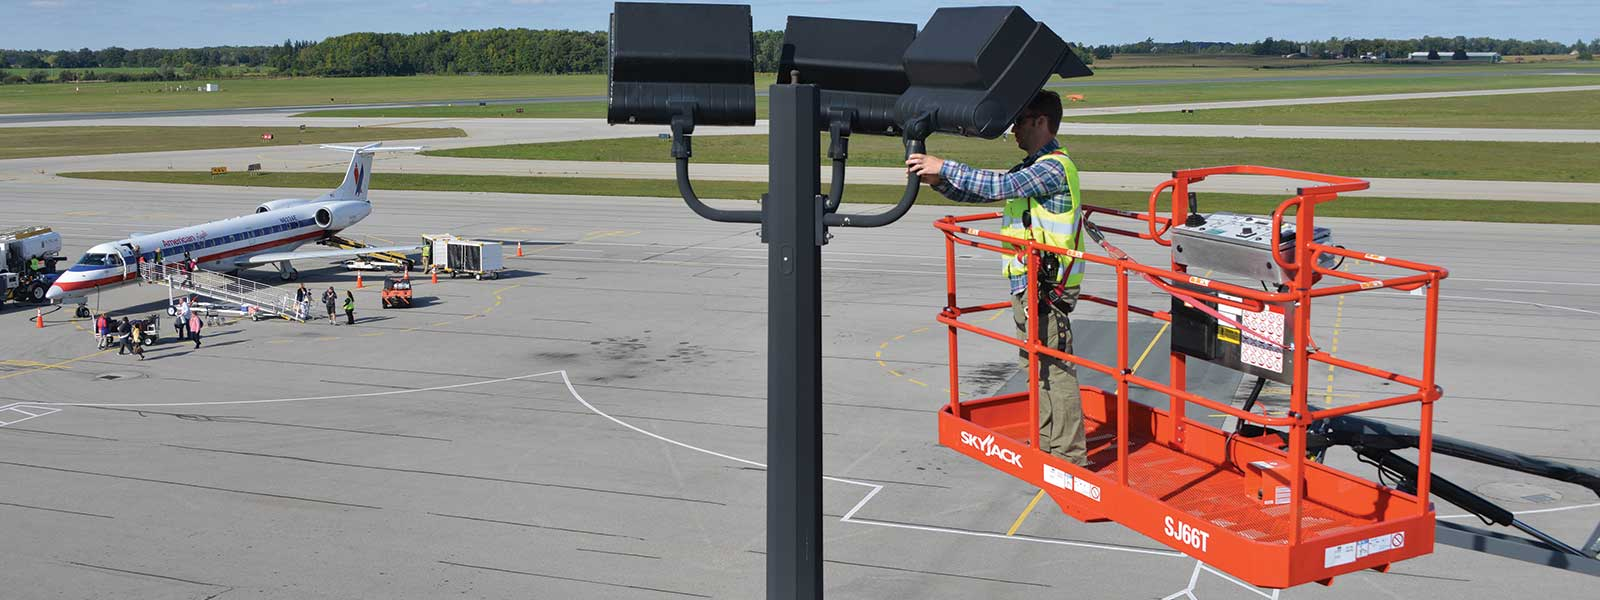 Rent Aerial Work Platforms in the Chicago Metro area